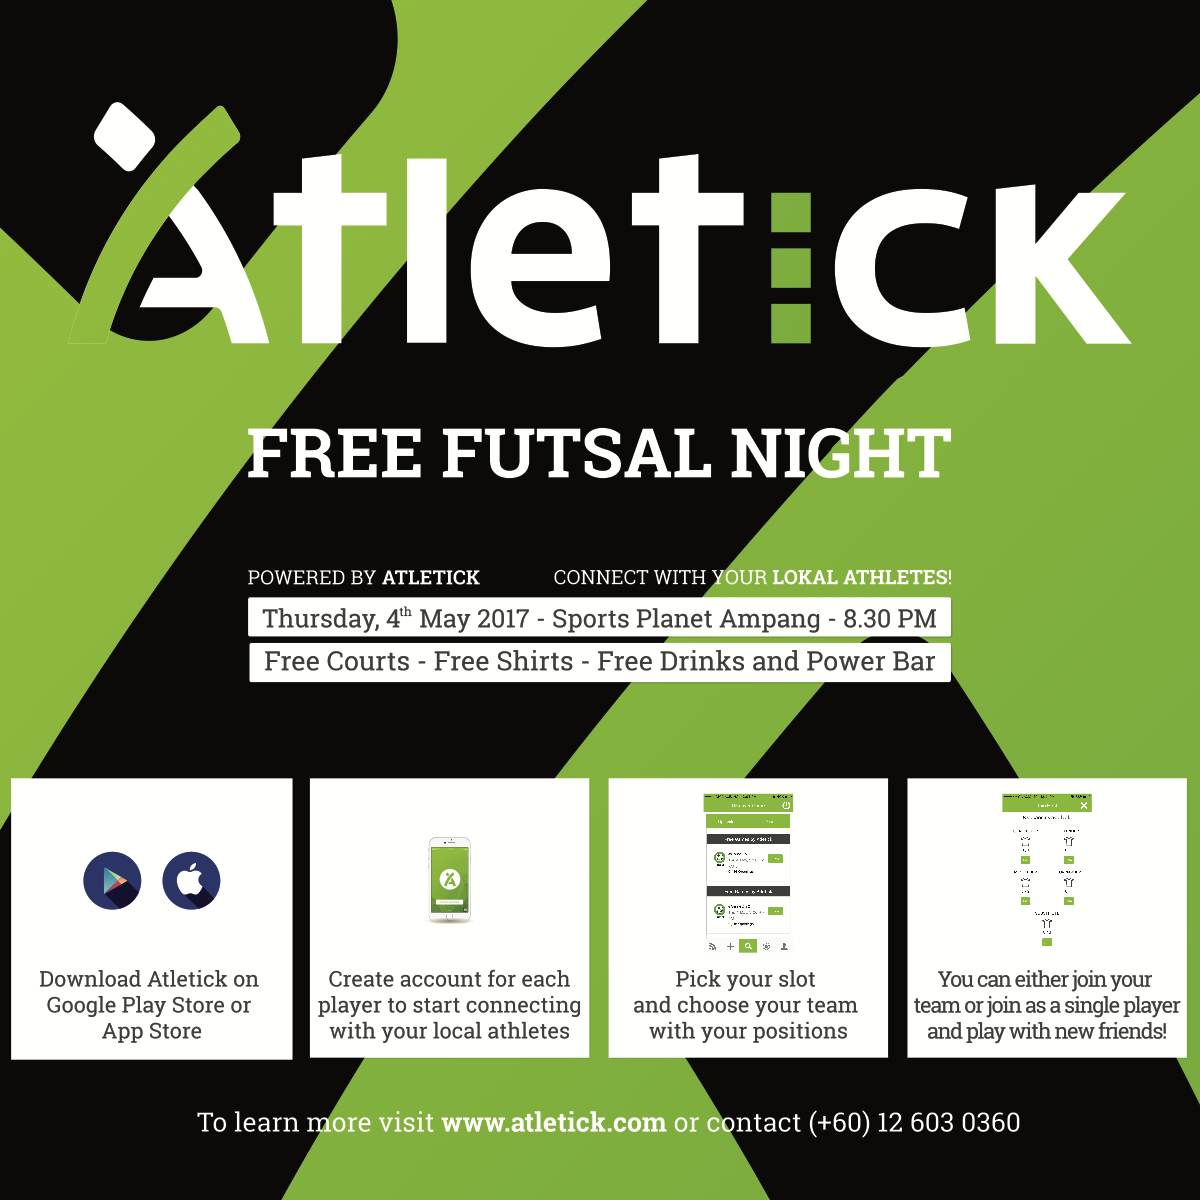 Poster for Atletick